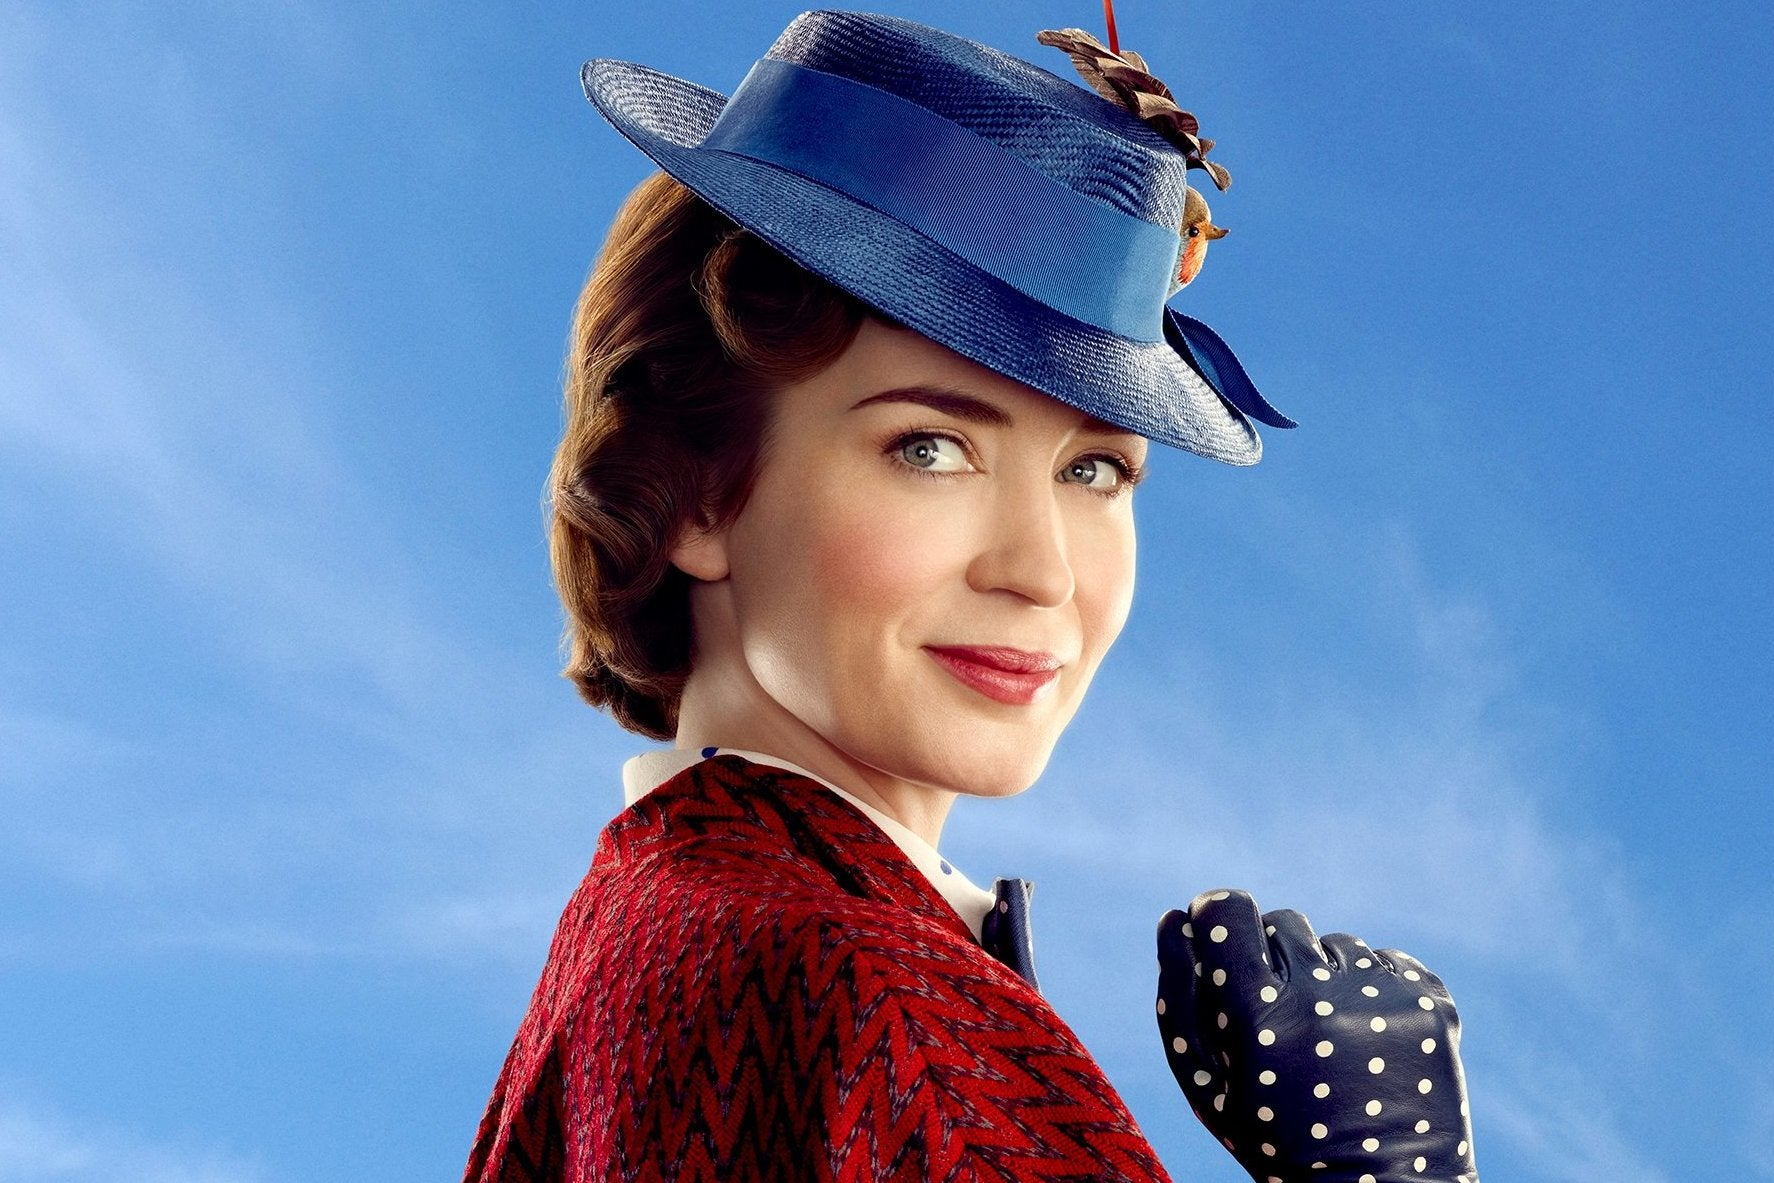 In Mary Poppins Returns Disney S Magical Nanny Has Come To Save Us All The Independent The Independent